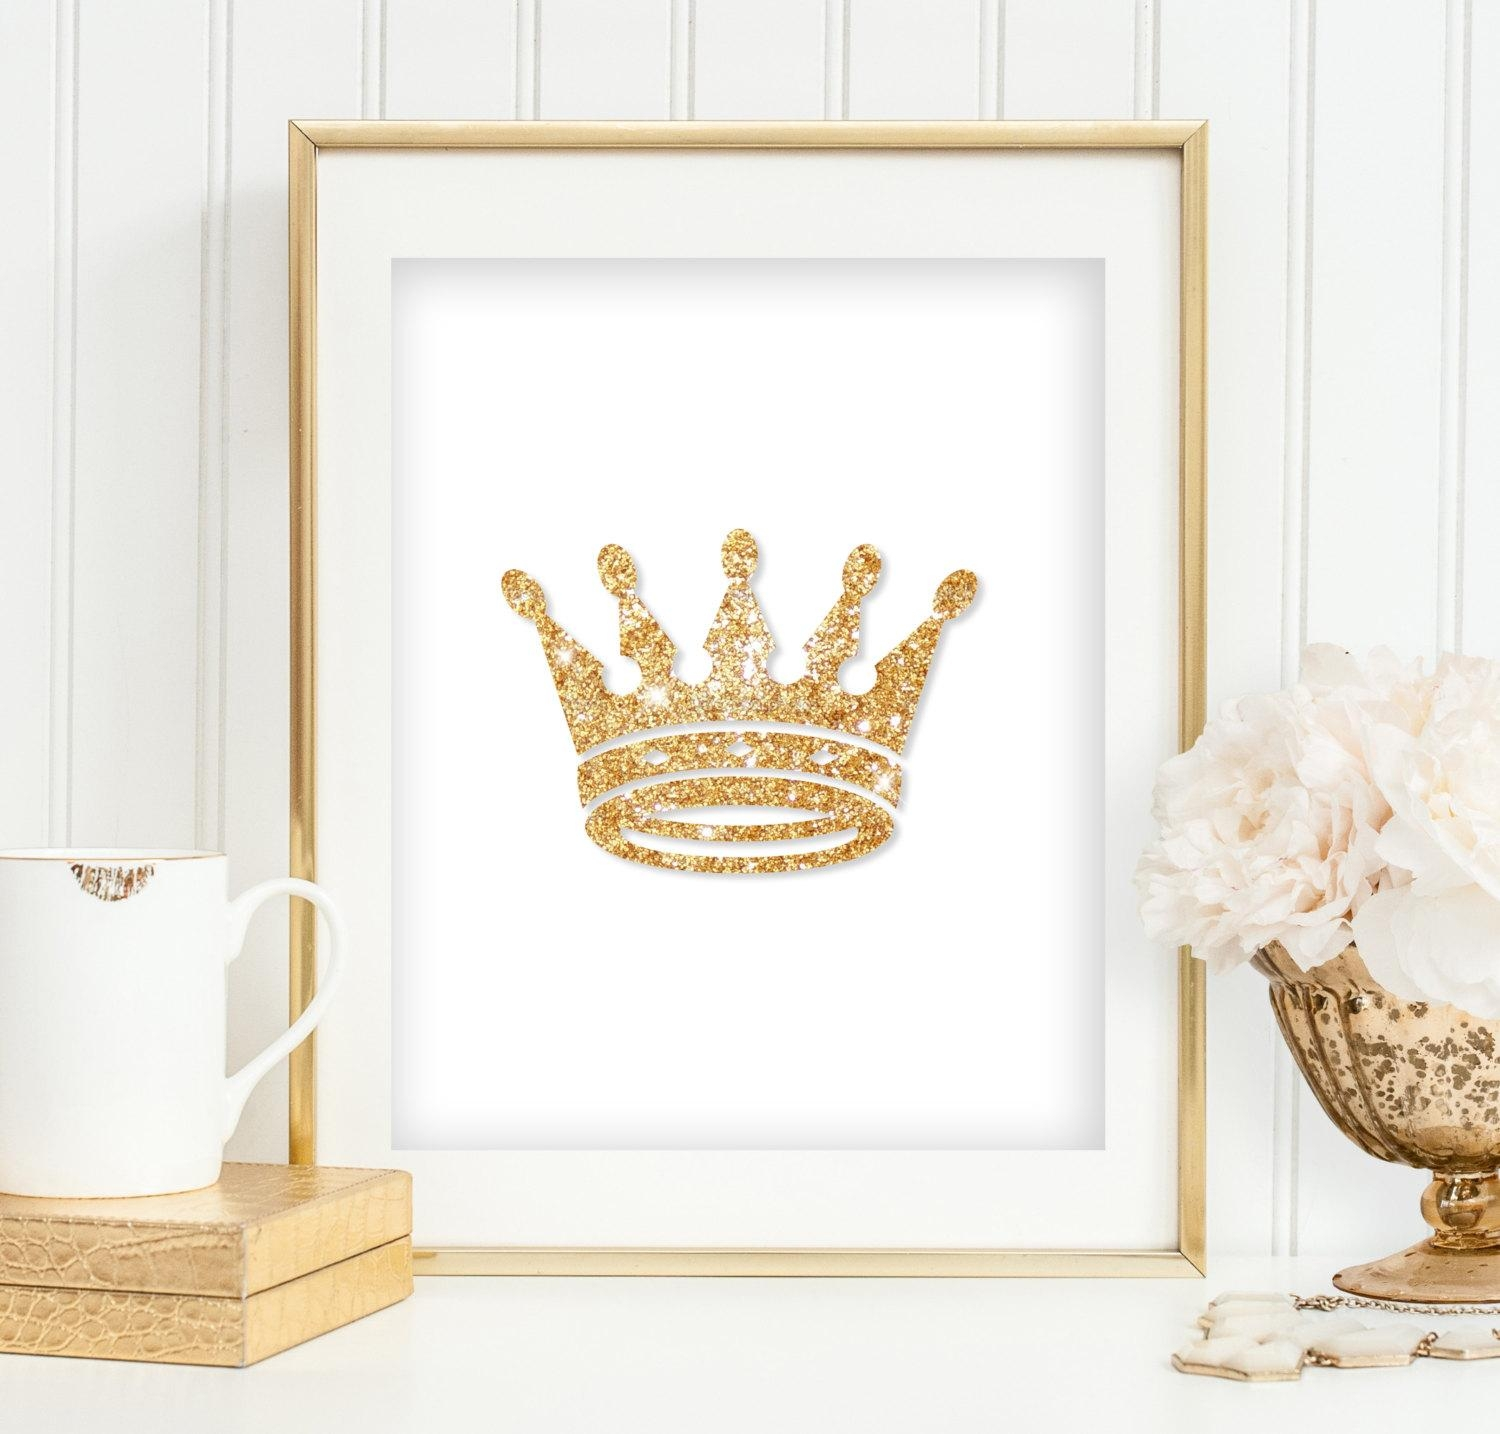 Gold Glitter Crown Print Girl's Bedroom Wall Art Princess With Regard To Princess Crown Wall Art (Image 11 of 20)